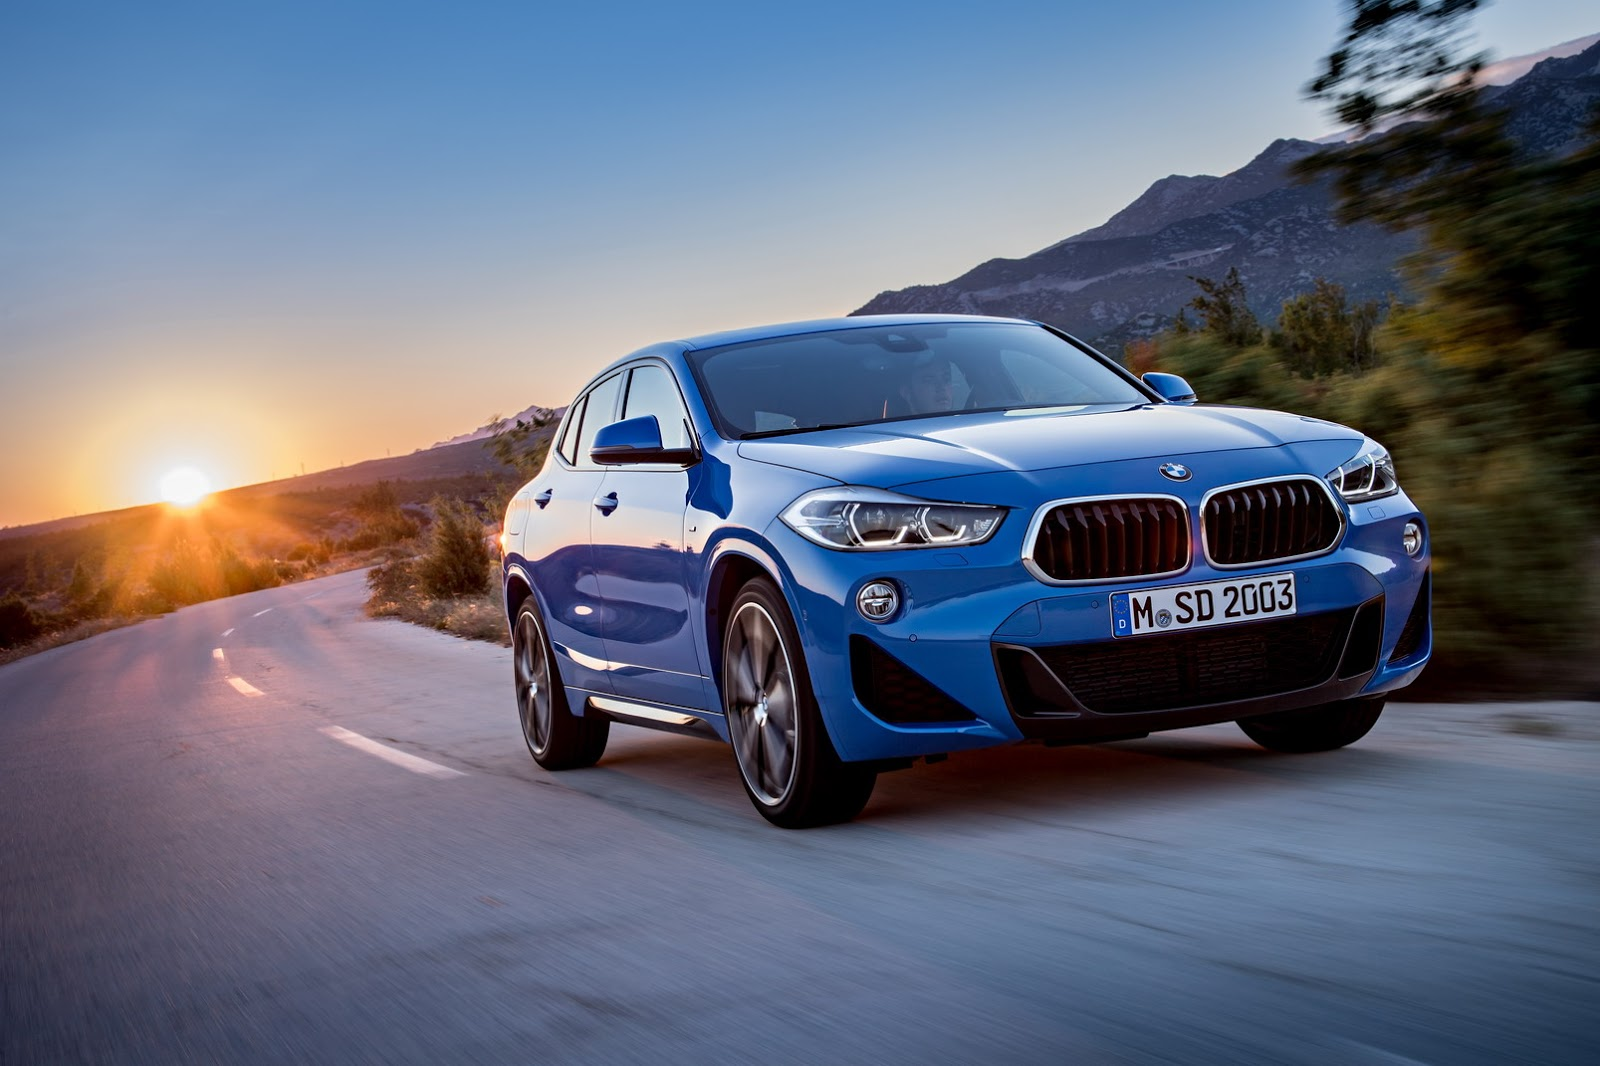 2018 bmw x2 f39 goes official boasts head turning exterior design autoevolution. Black Bedroom Furniture Sets. Home Design Ideas